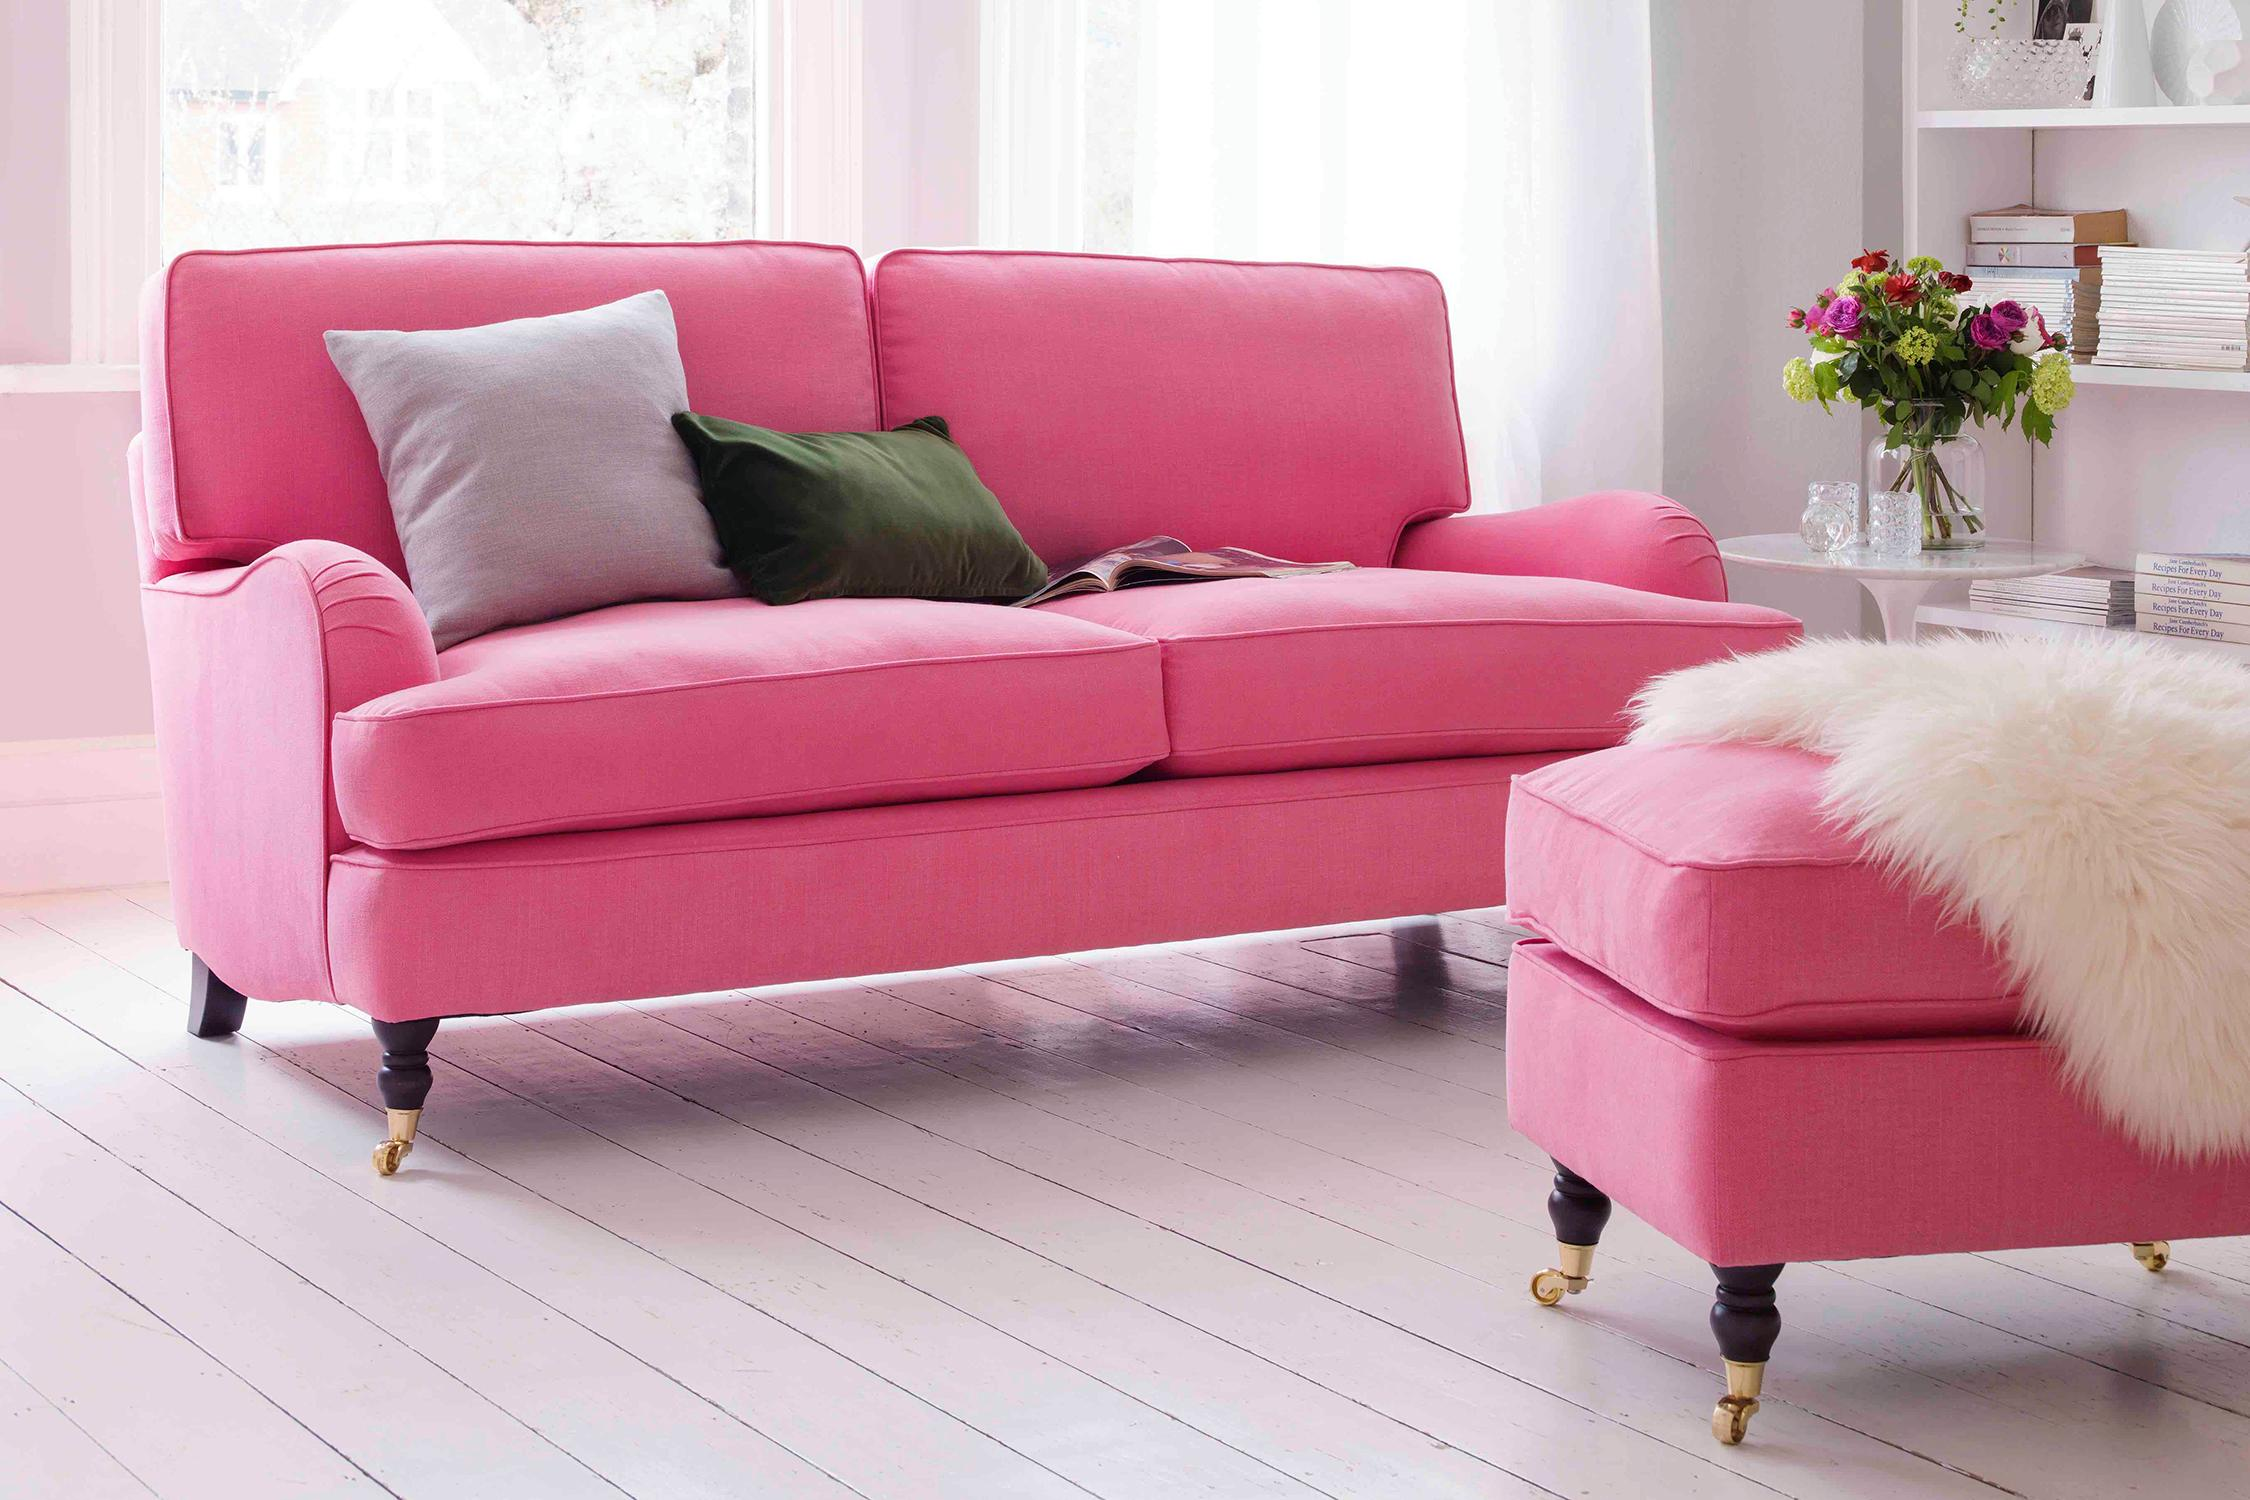 pink sofas dark brown leather sofa ebay top 10 home the sunday times space saving and super cosy l shaped is a popular choice for smaller rooms this com s whitby asymmetrical corner w223cm in blush